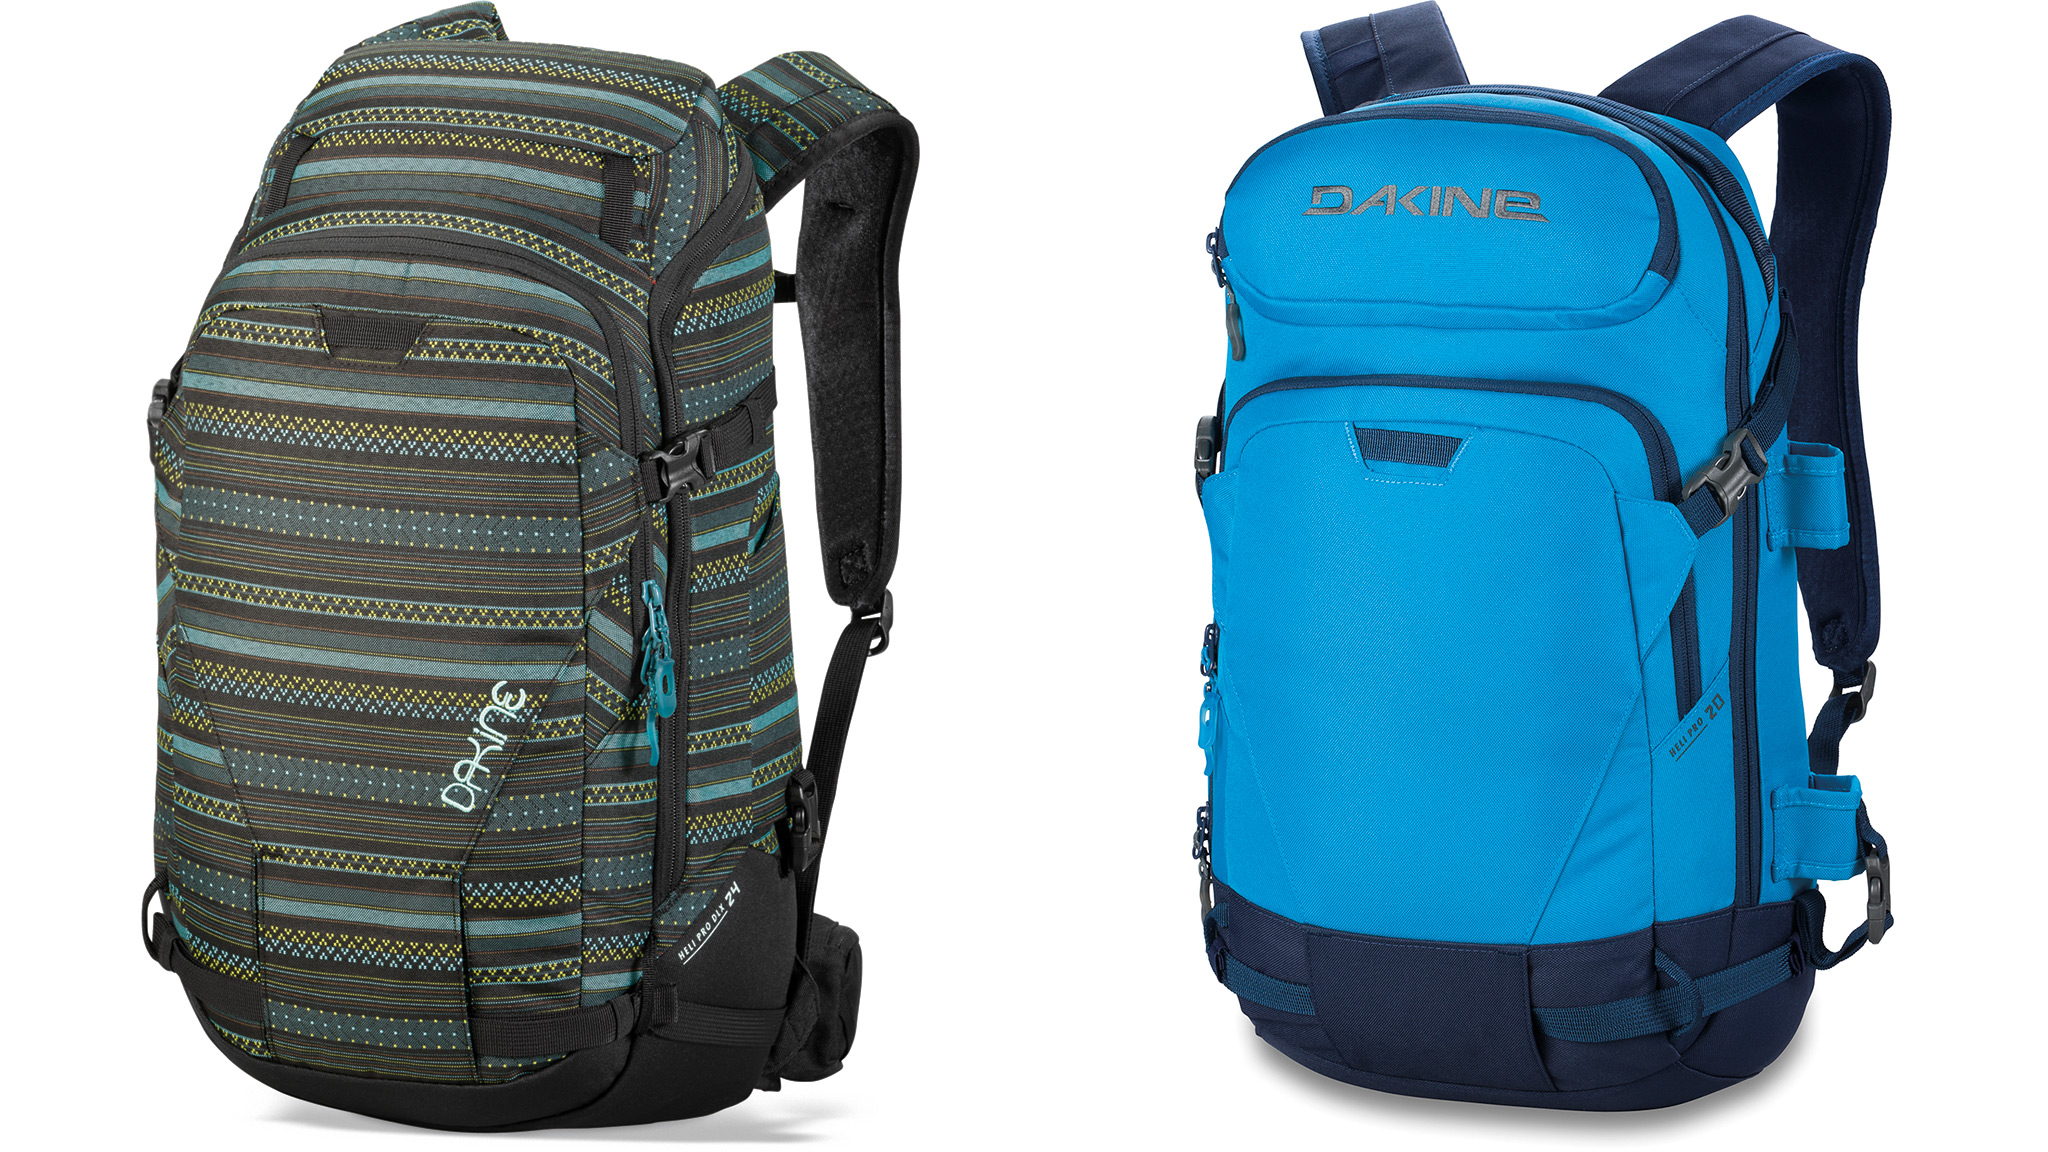 Dakine Heli Pack Series